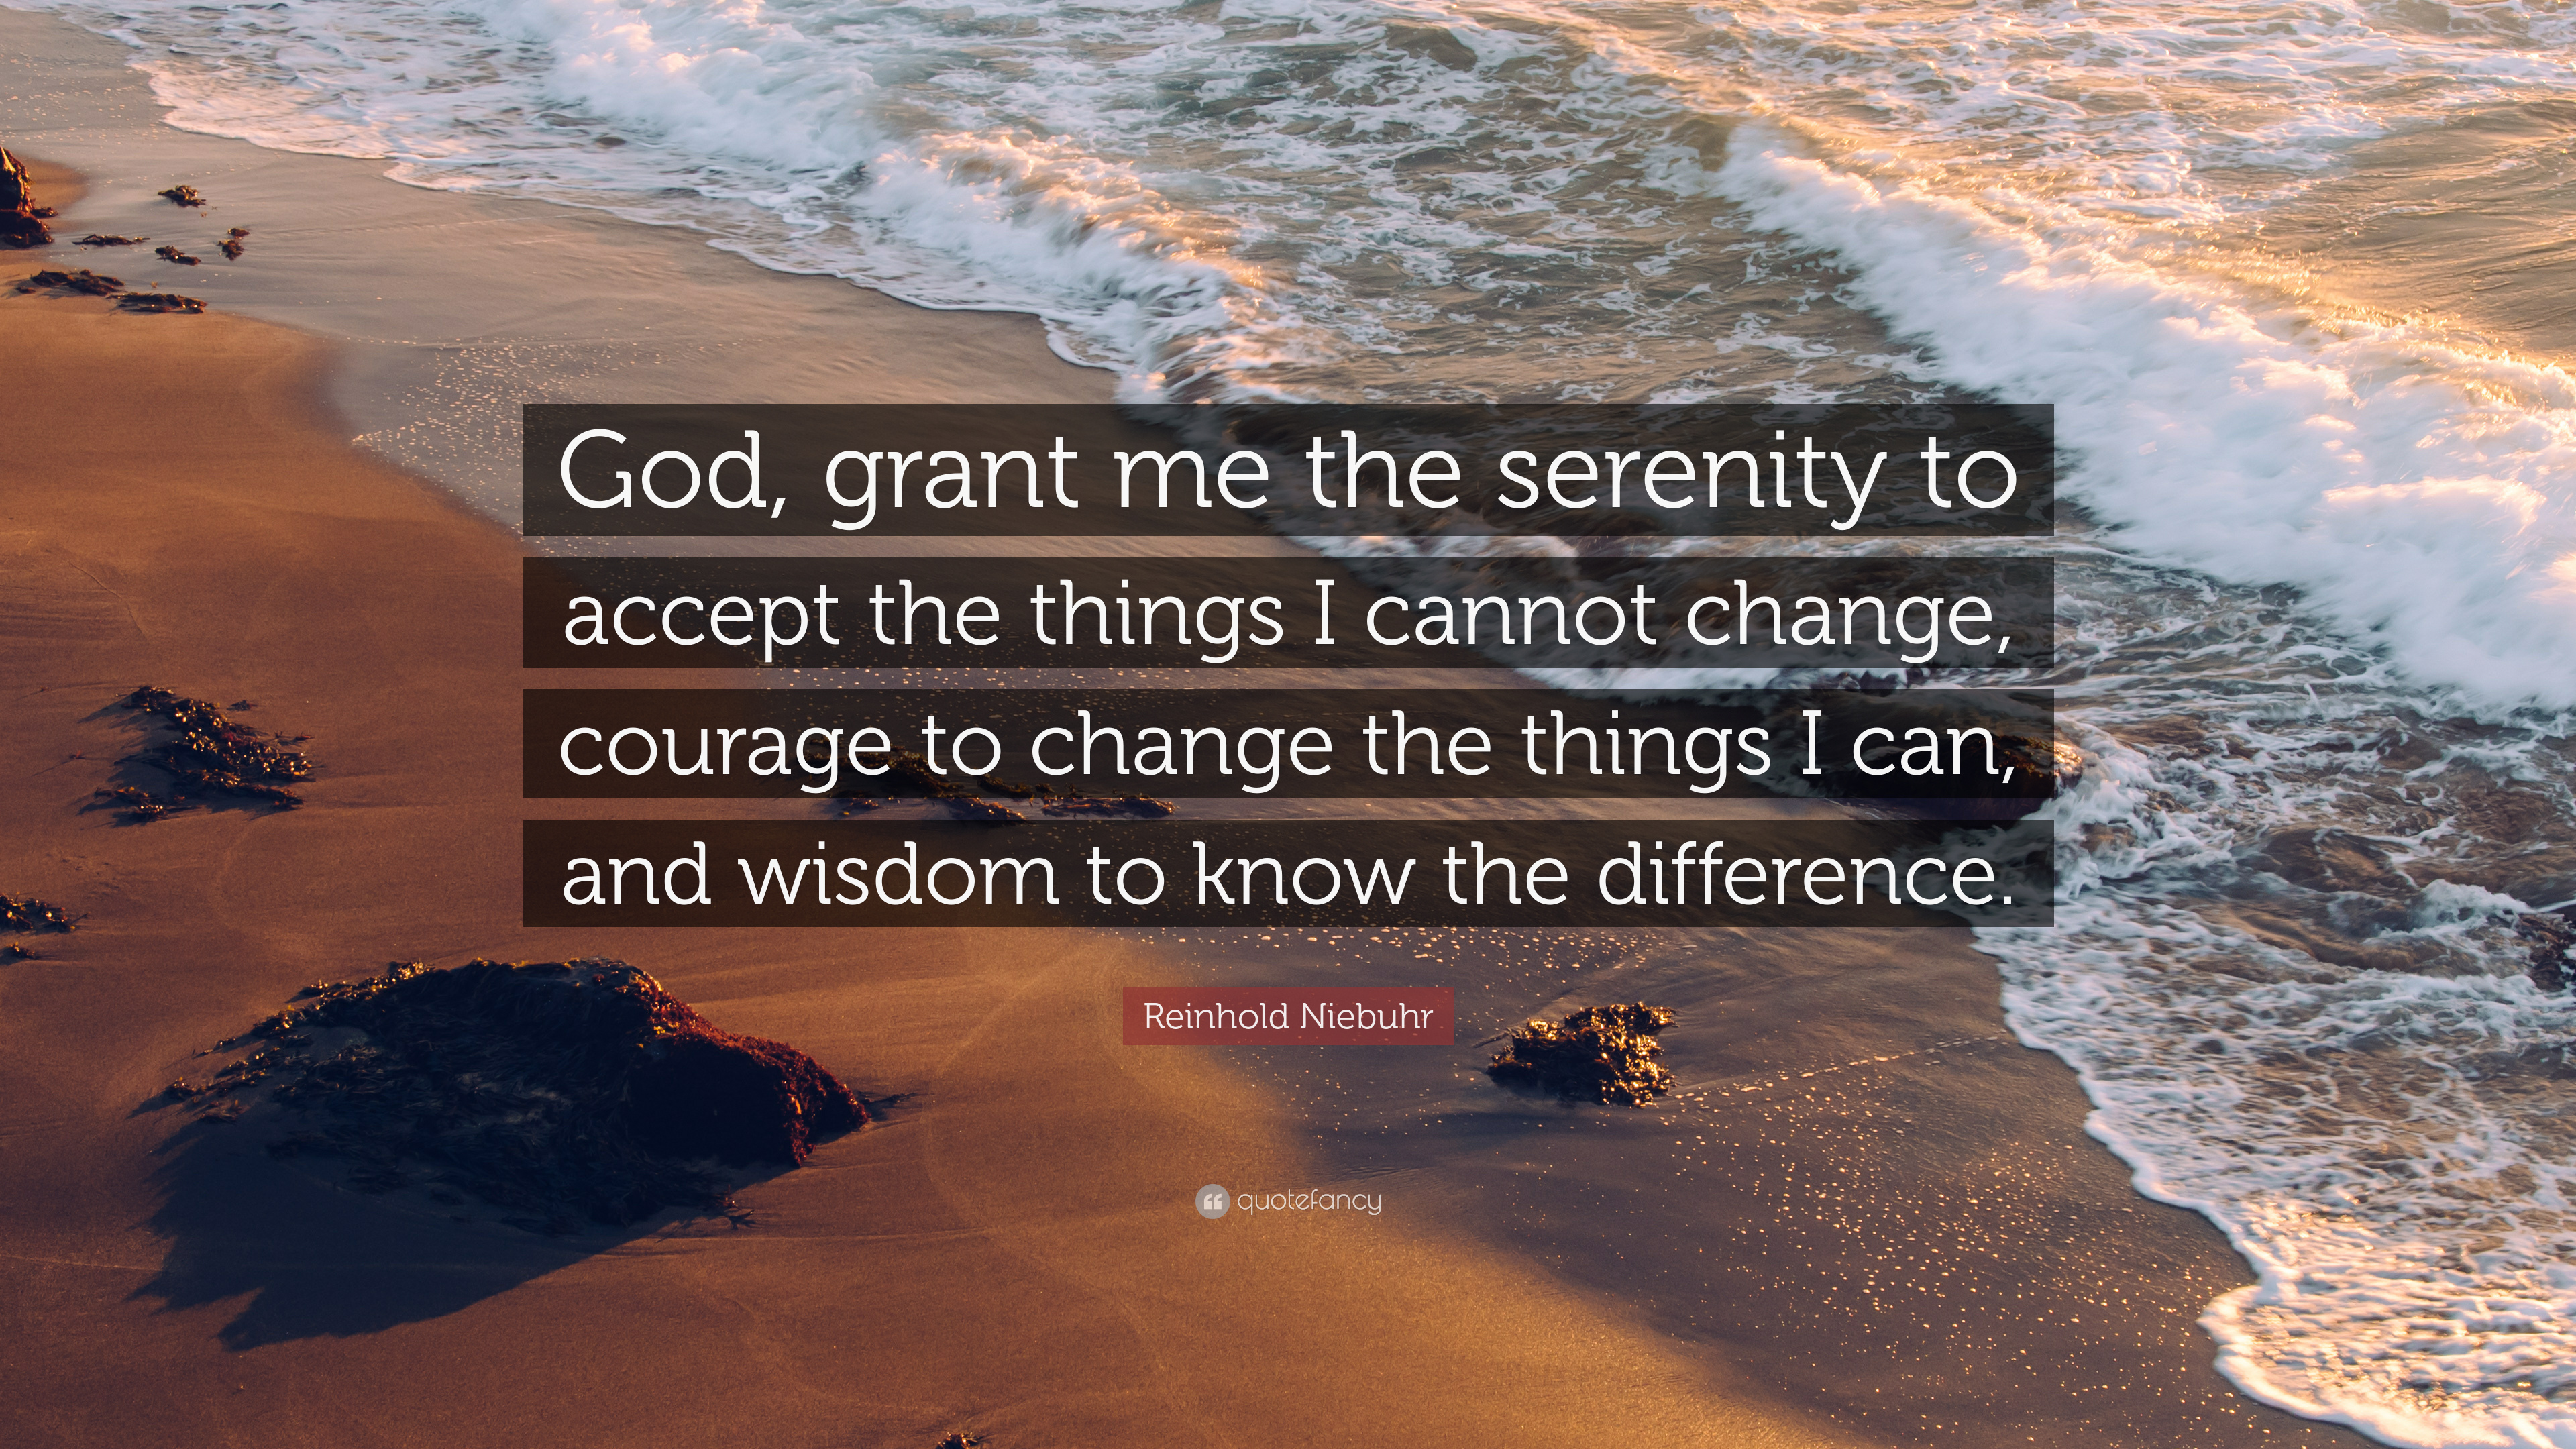 2003632-Reinhold-Niebuhr-Quote-God-grant-me-the-serenity-to-accept-the